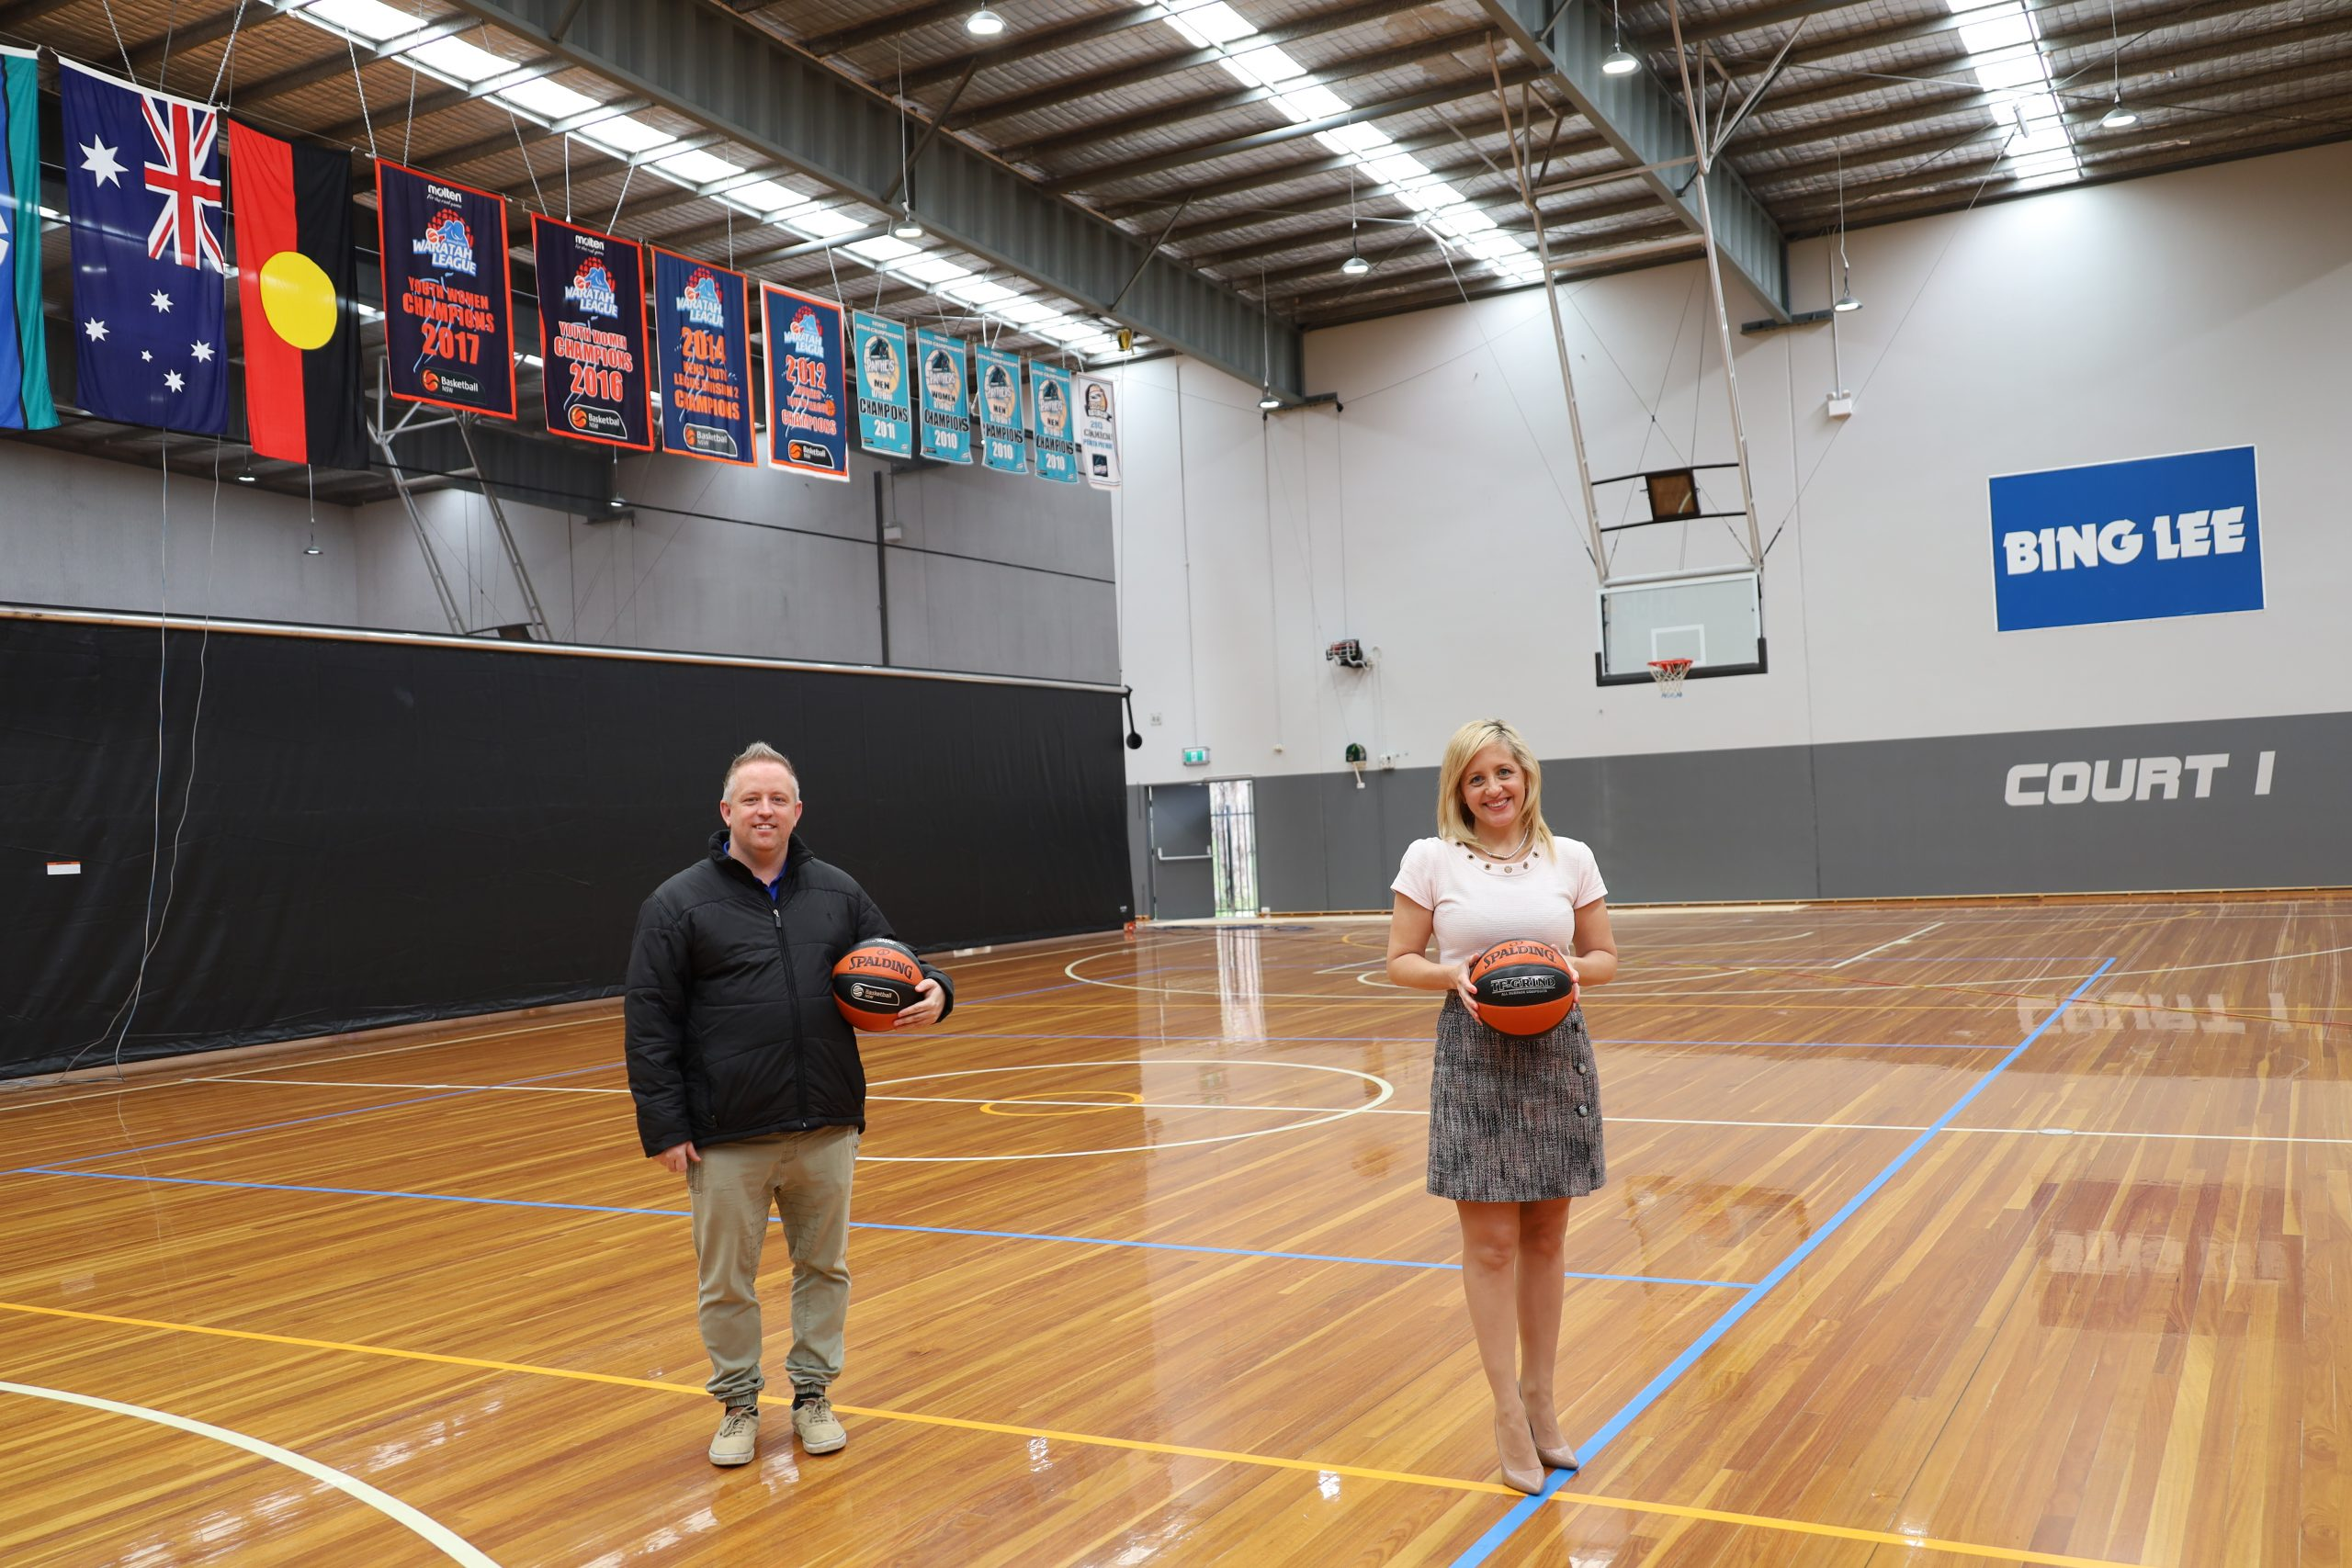 MP Melissa McIntosh with Luke Hepburn General Manager of the Penrith Valley Regional Sports Centre